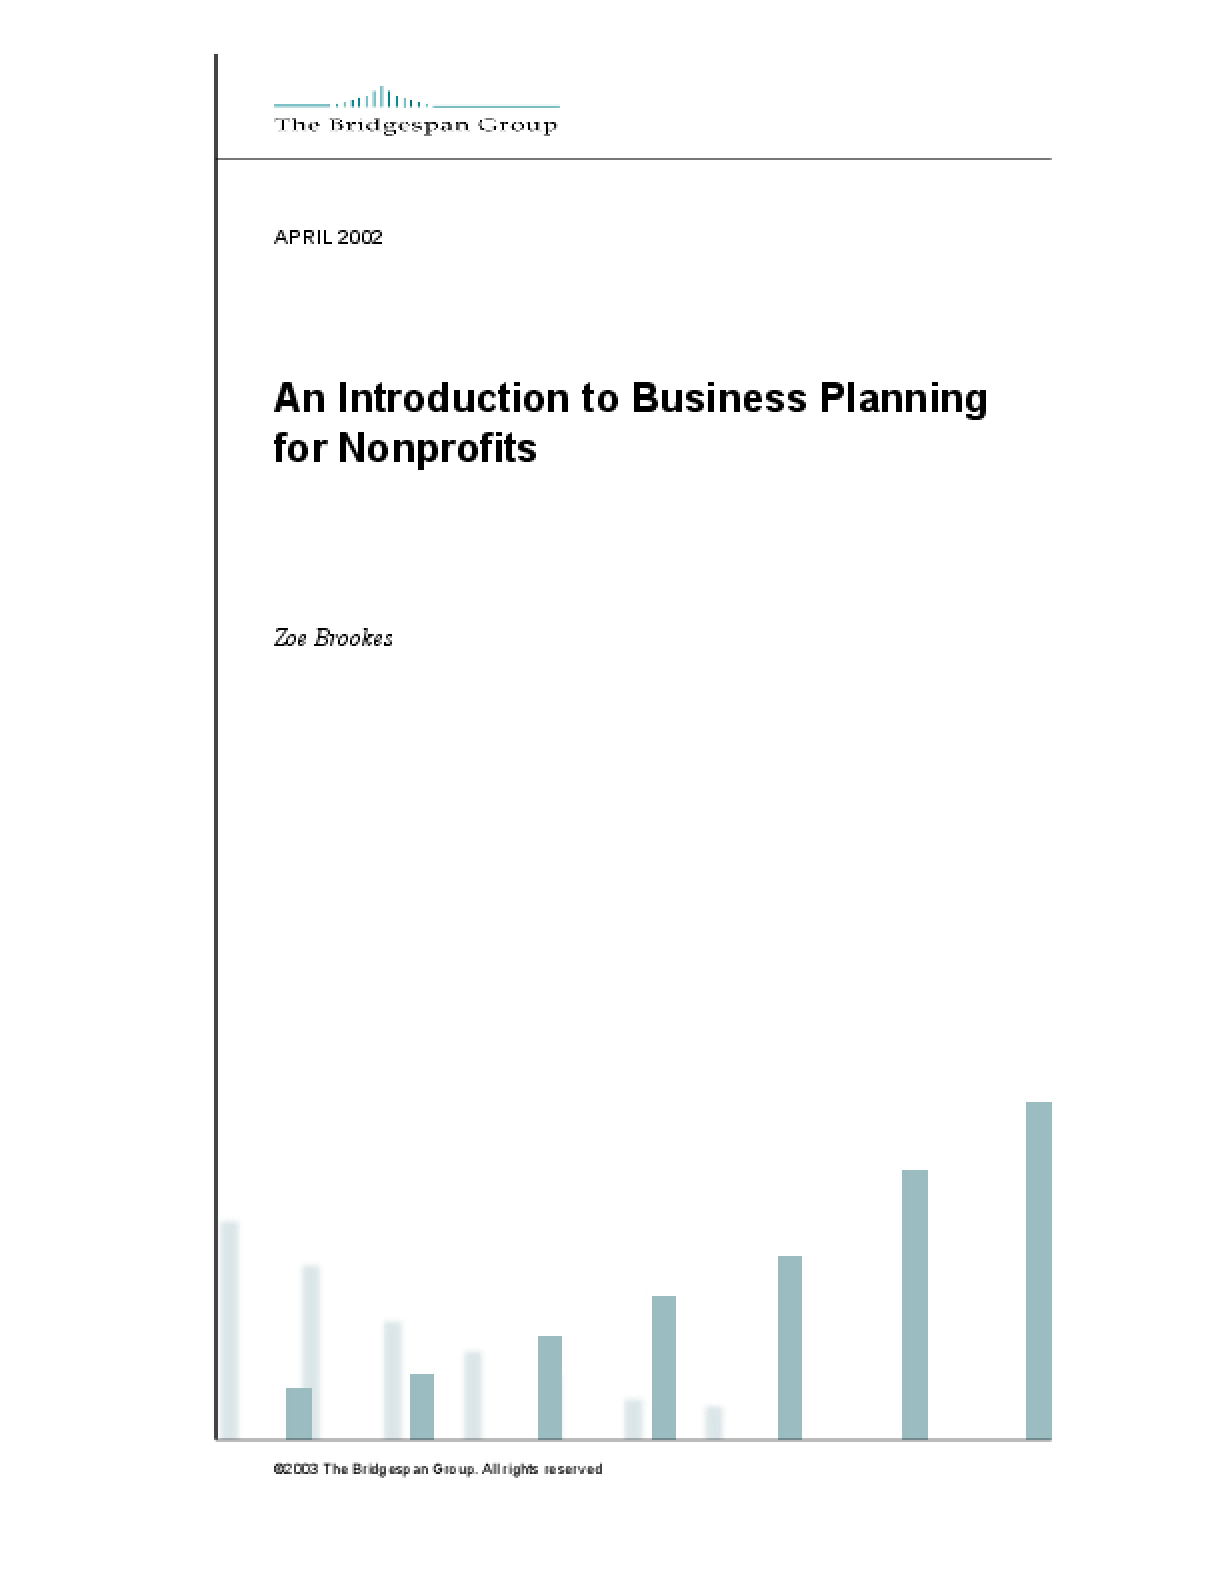 An Introduction to Business Planning For Nonprofits